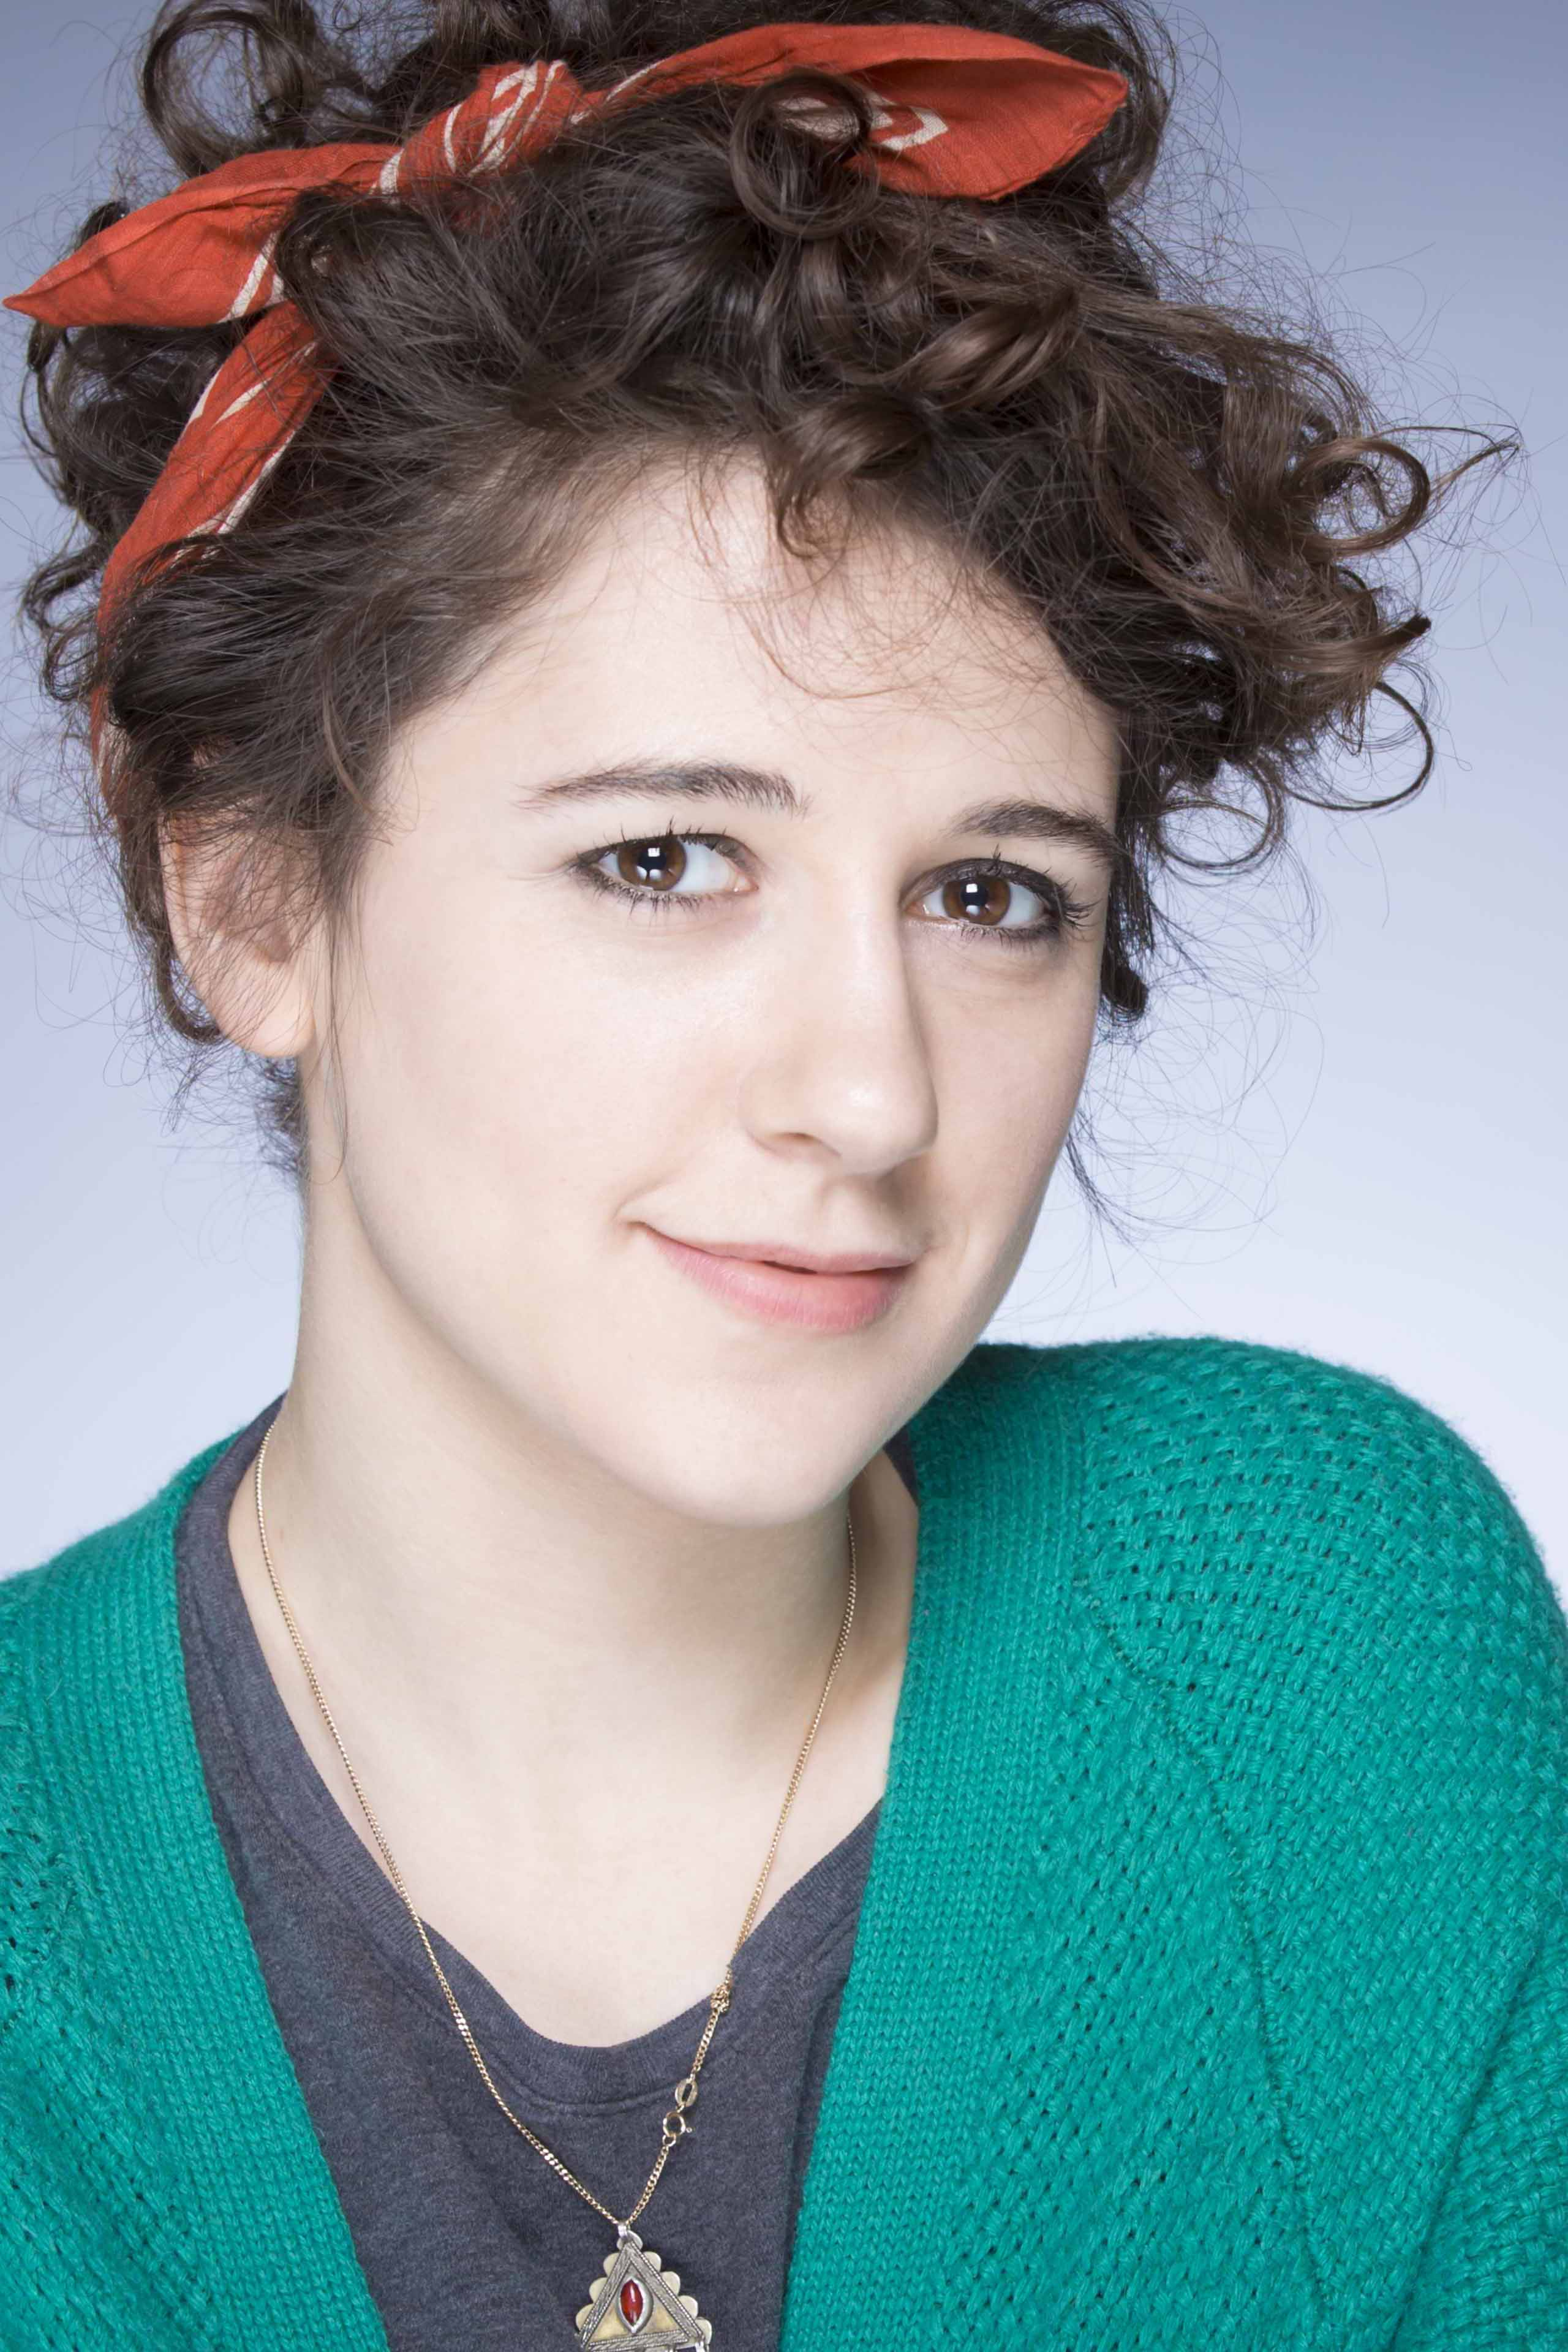 The 27-year old daughter of father (?) and mother(?), 155 cm tall Ellie Kendrick in 2017 photo